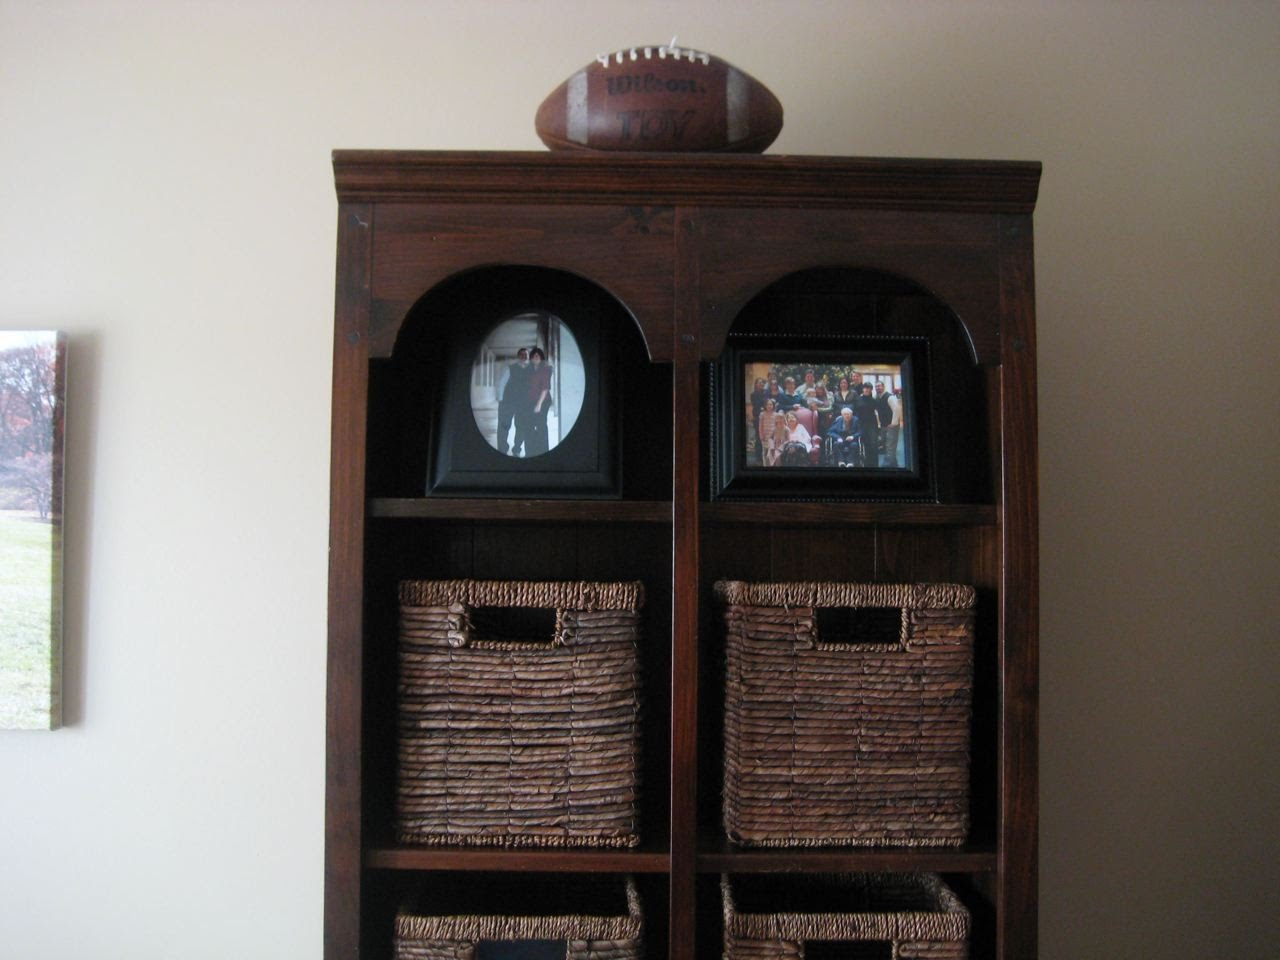 Jubilee Furniture: Tuesday's customer inspiration - Joy ... on Hobby Lobby Furniture Clearance id=55470